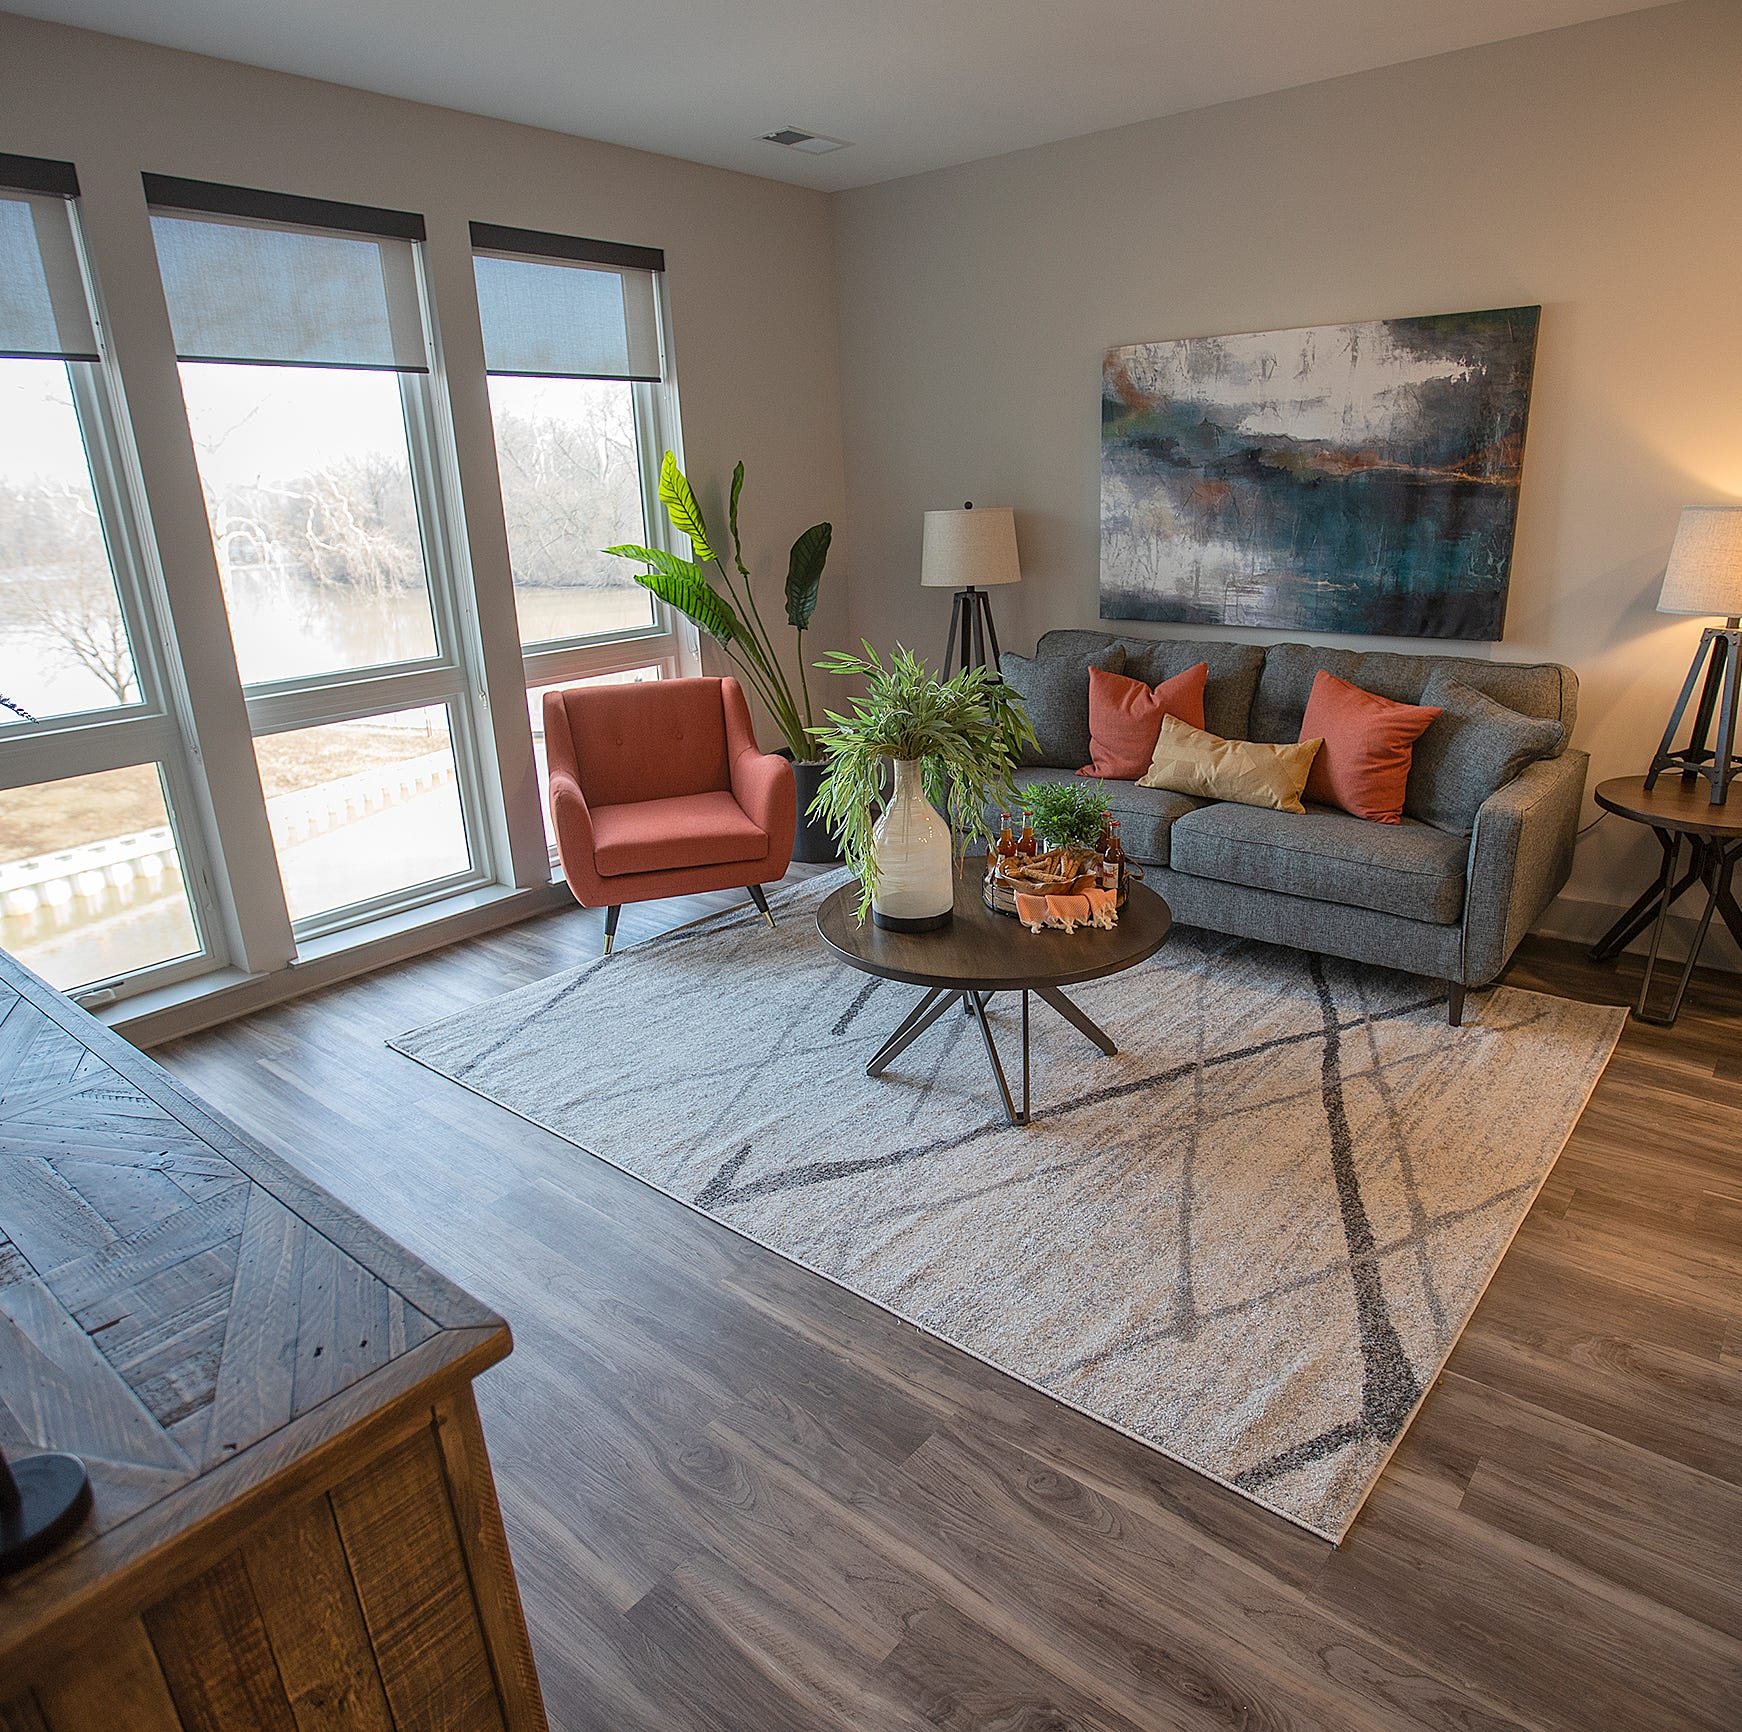 Hot Property: Get great views of the river and a rooftop patio at Broad Ripple's new River House apartments